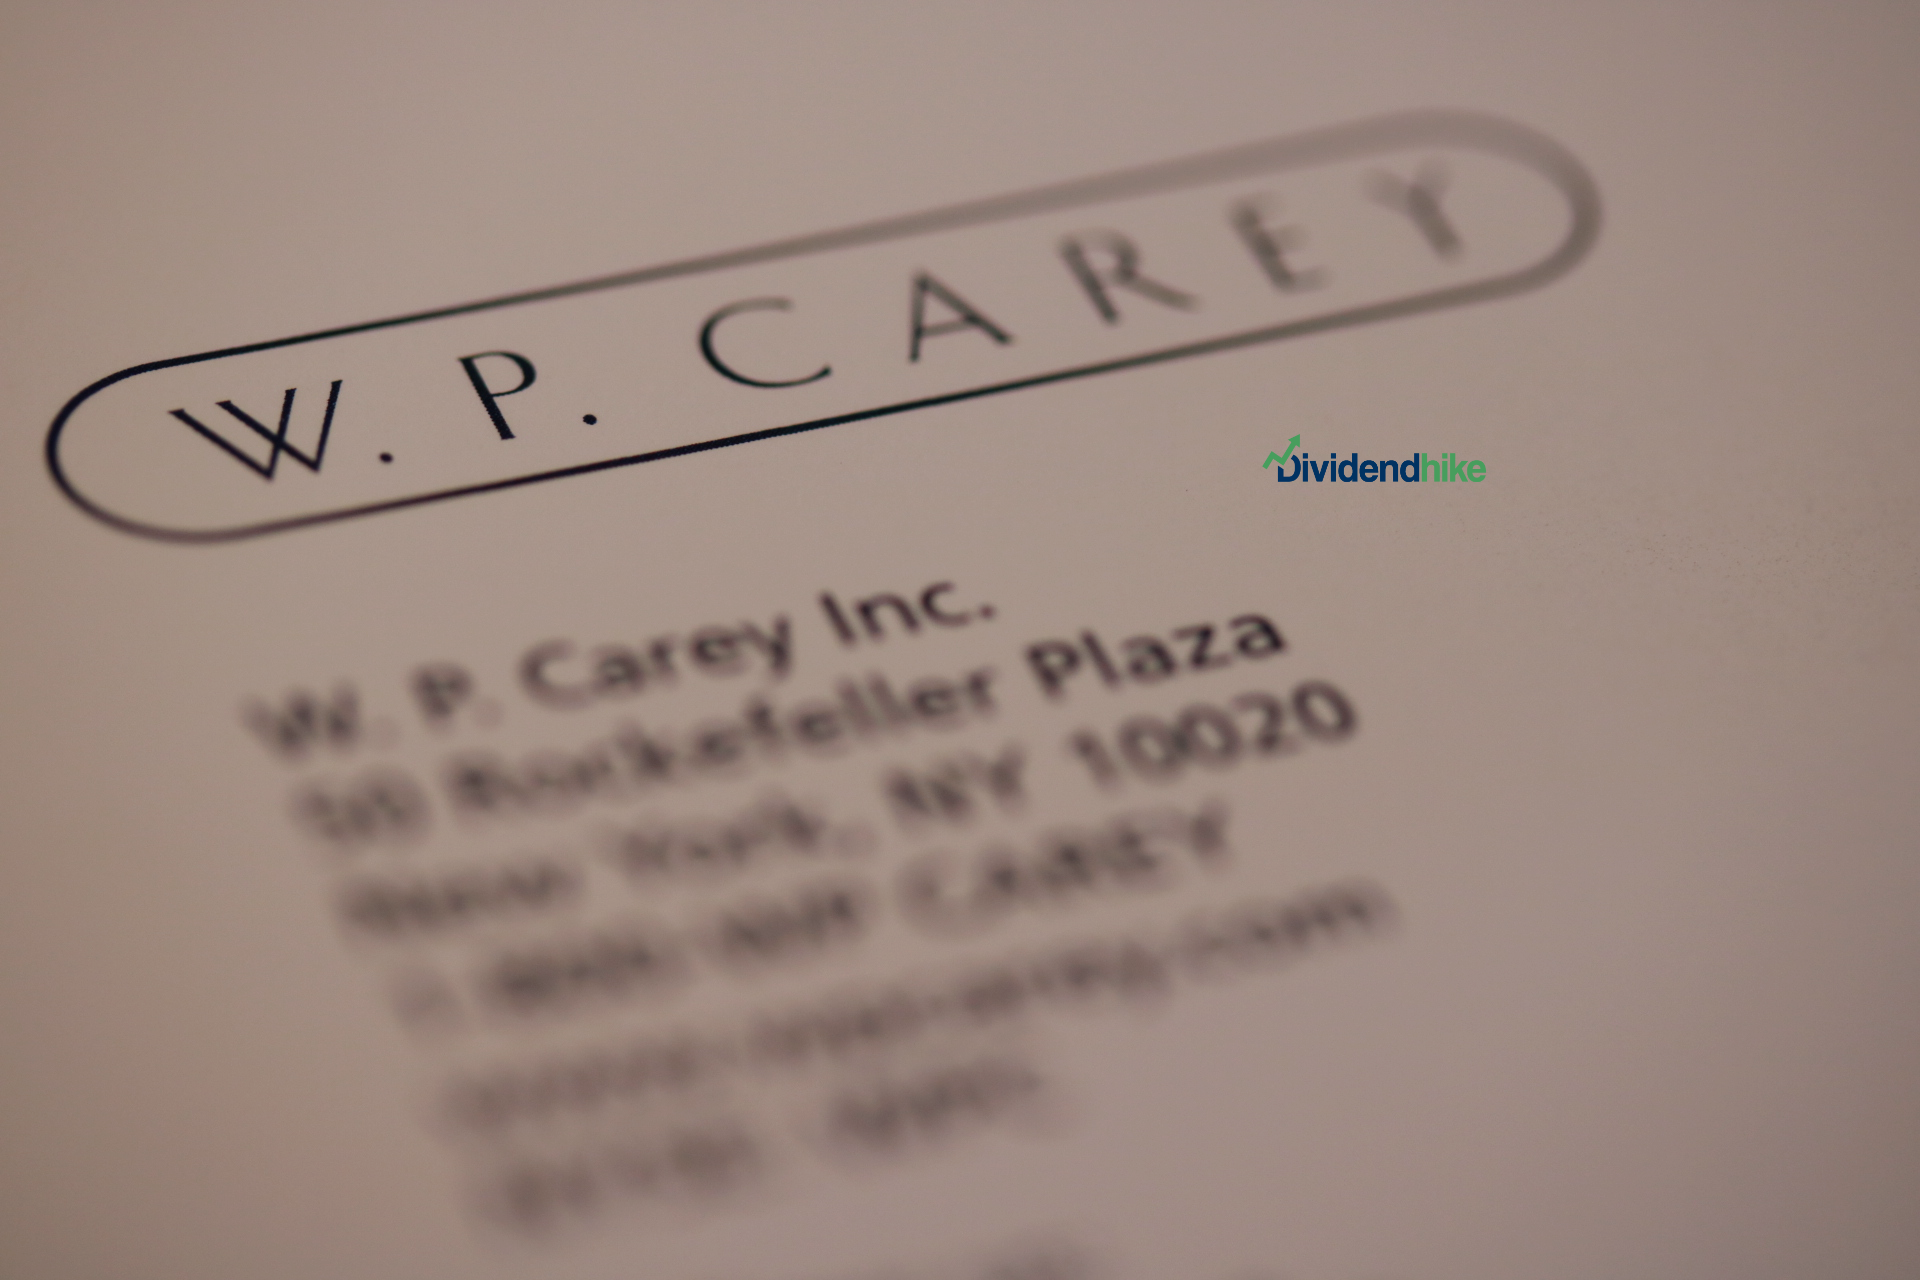 W.P. Carey also hiked its dividend by 0.2 percent in Q1 © dividendhike.com